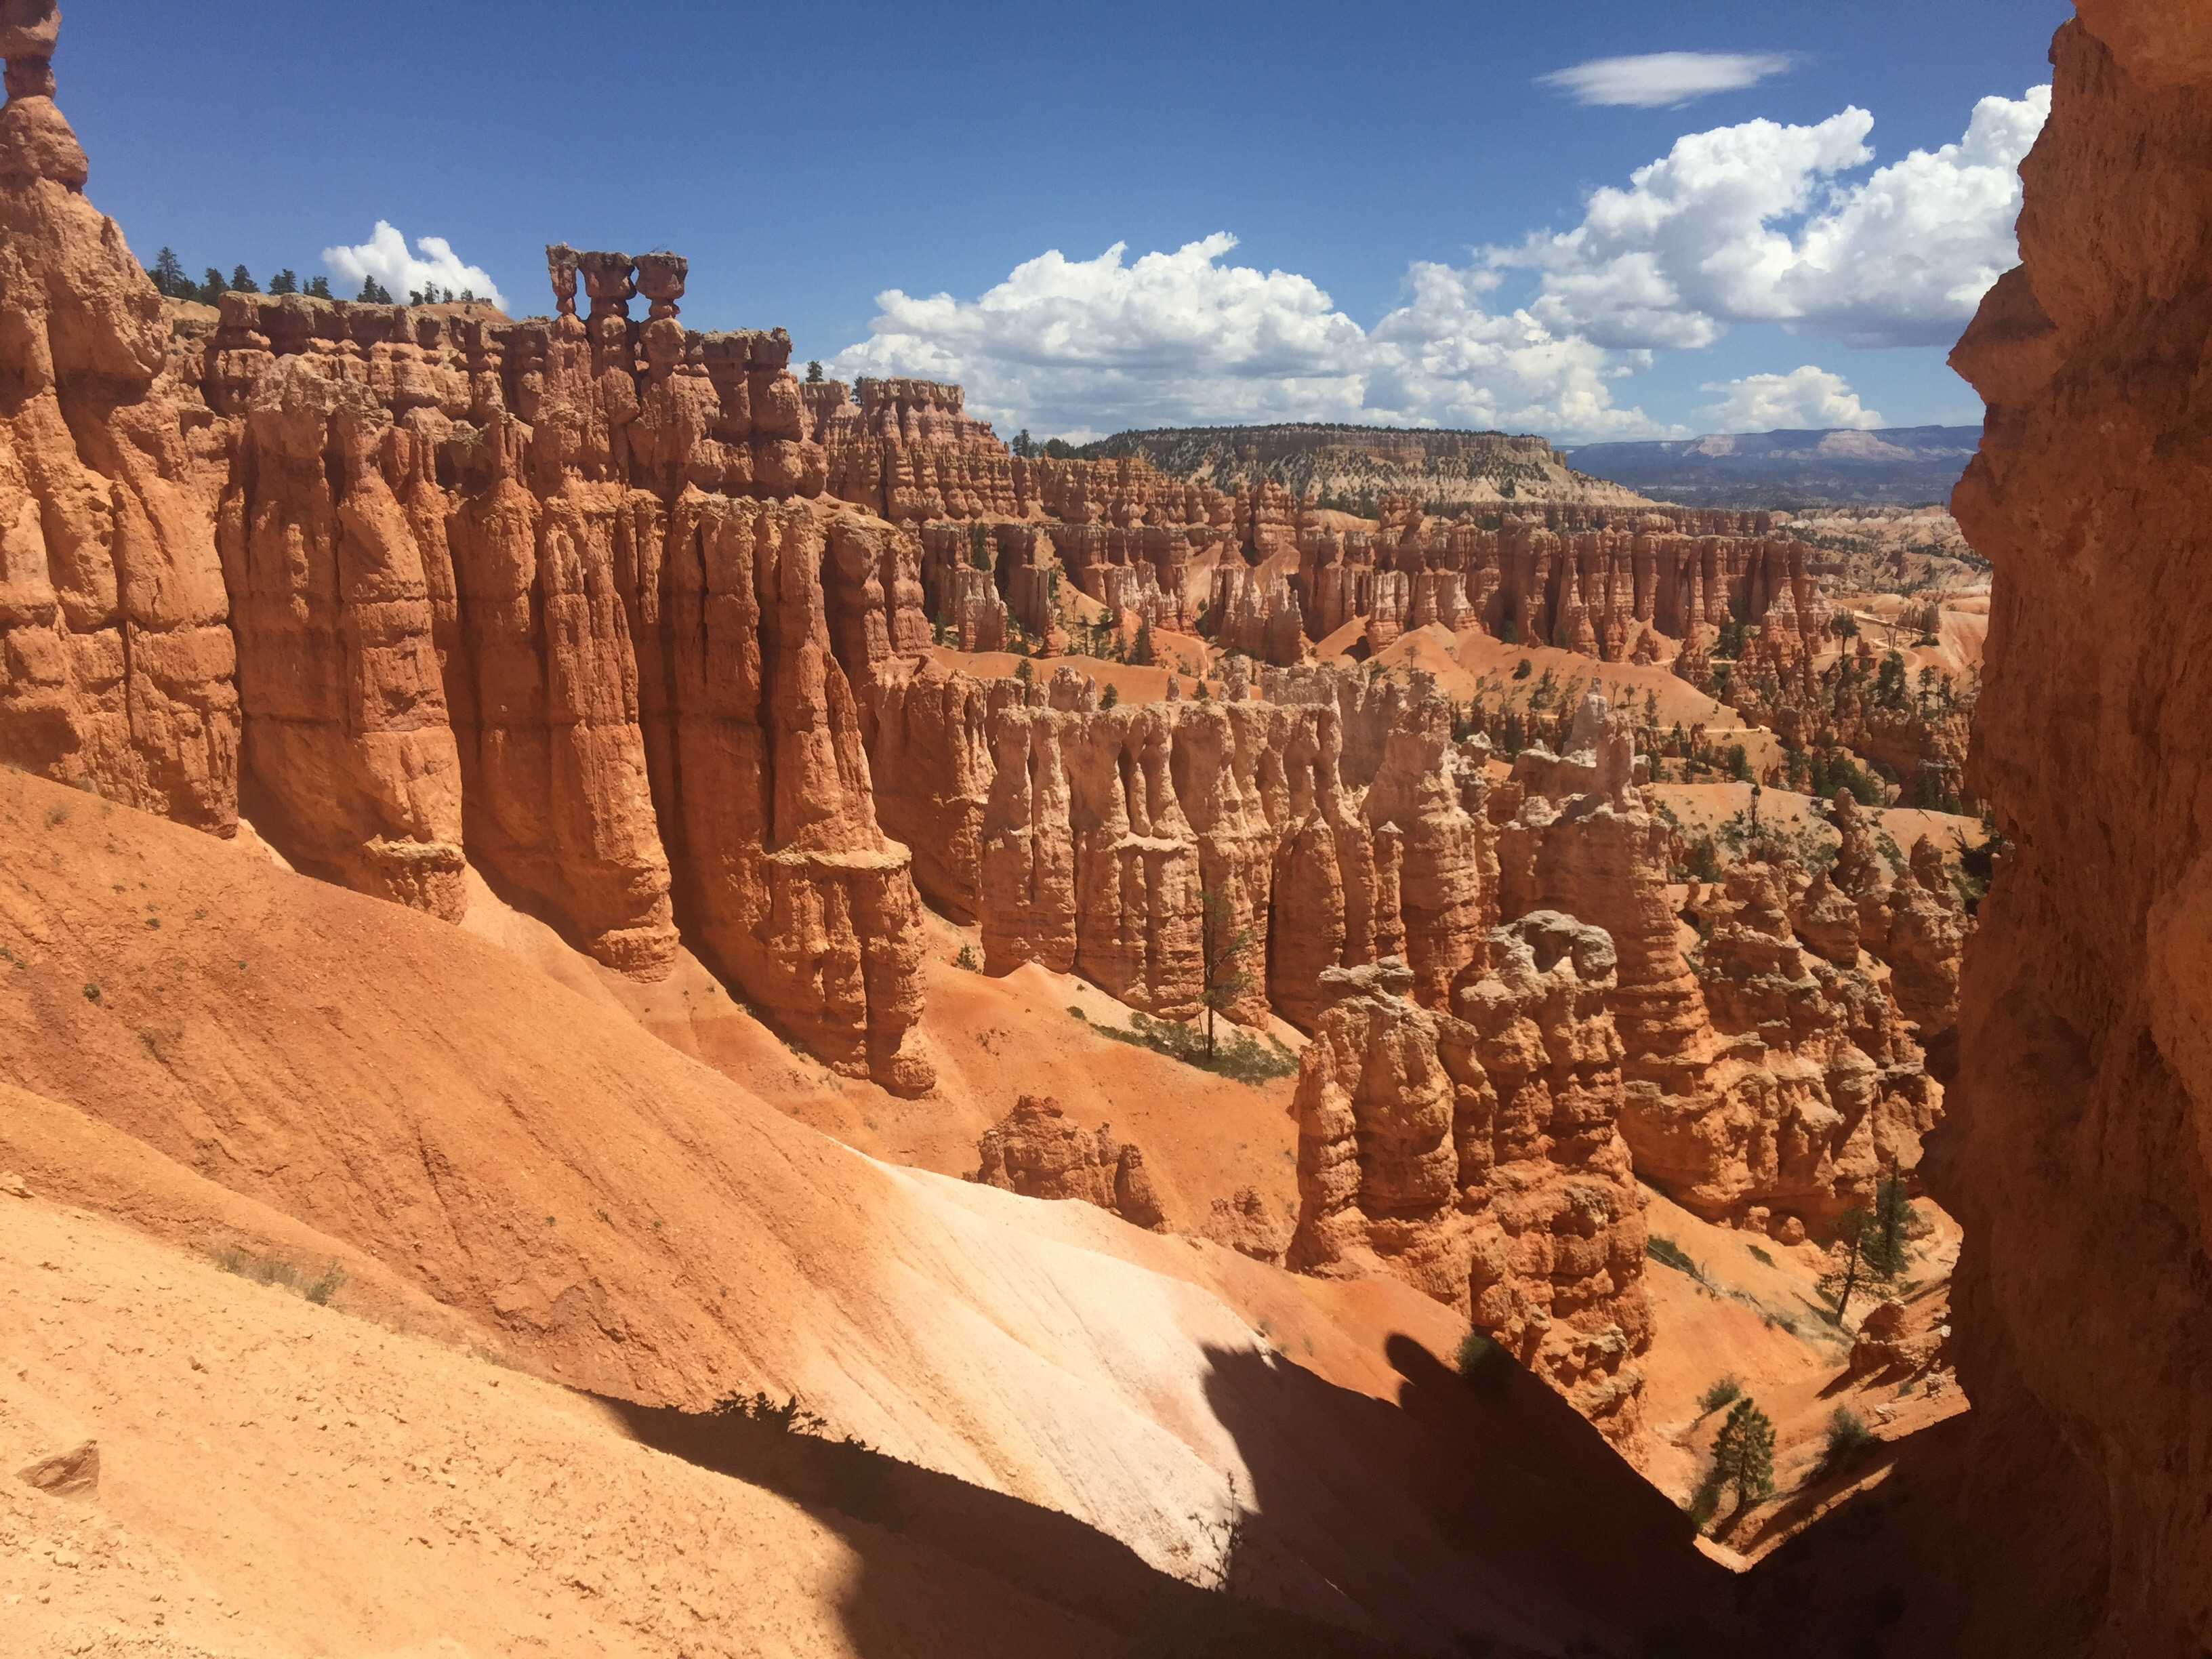 TheMouse sur YouTube: TheMouse au Farwest #11 Tropic – Bryce canyon – Queen garden Trail – Navajo loop